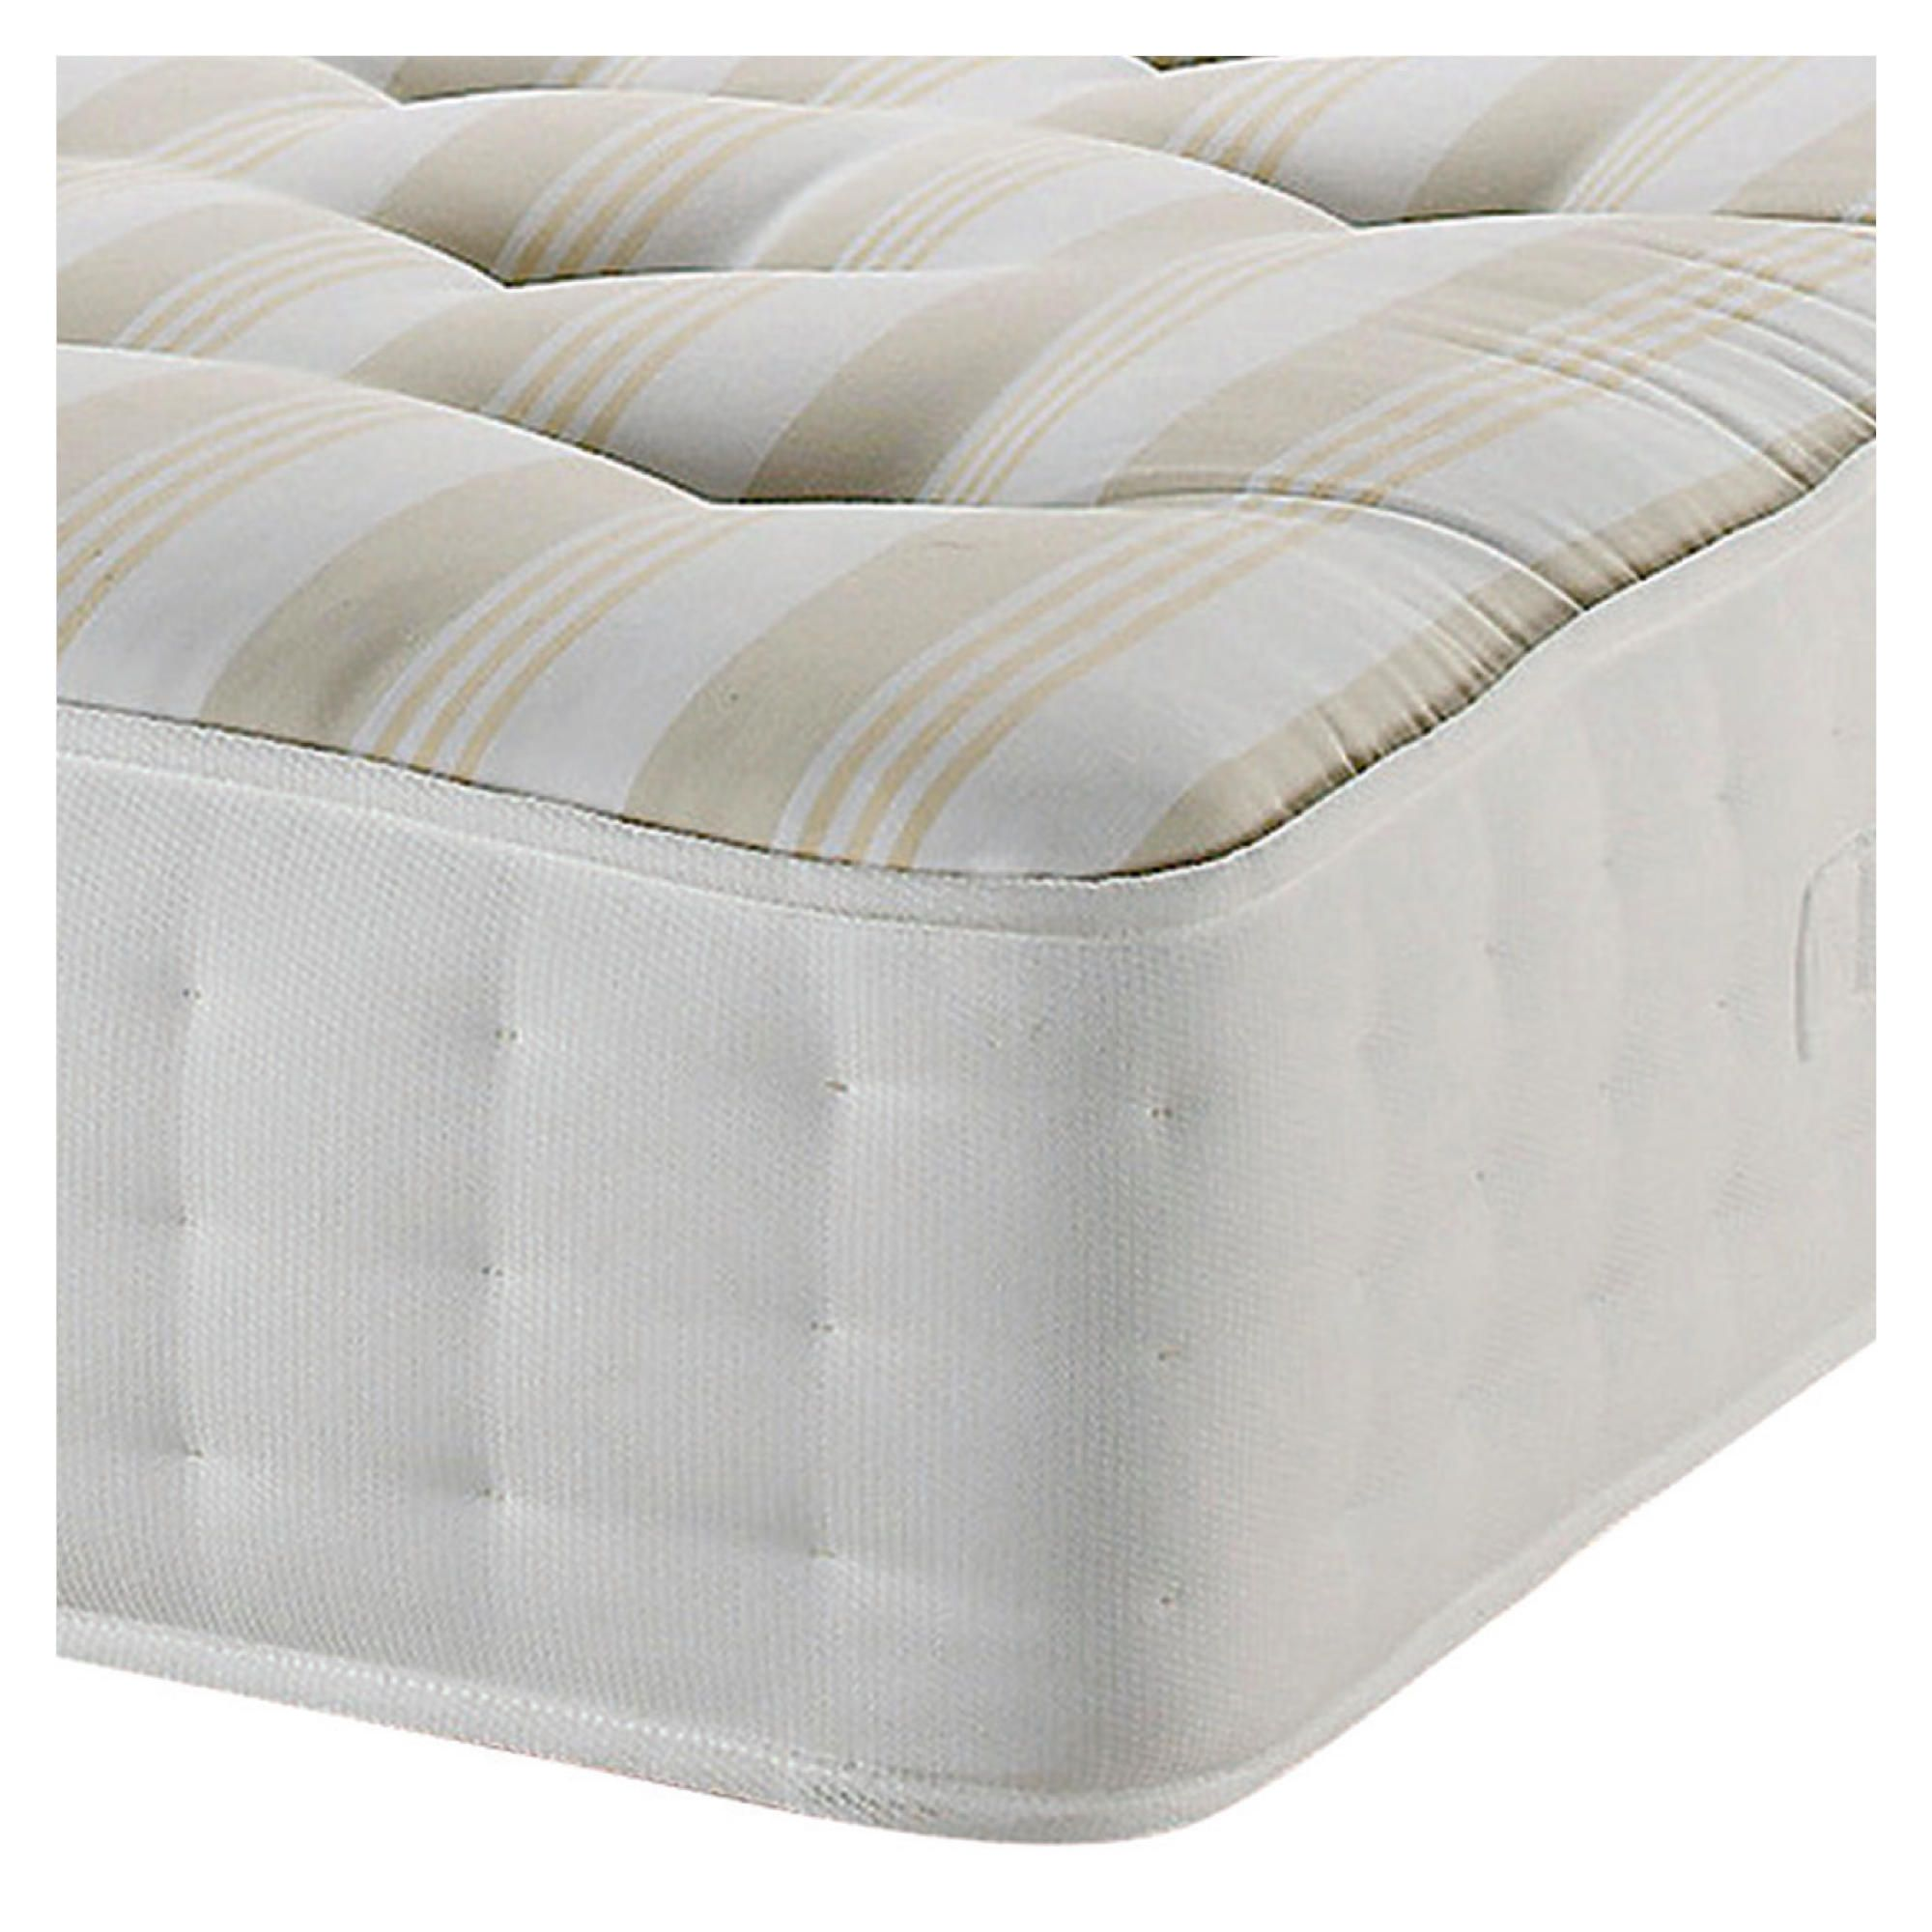 Rest Assured Royal Ortho 1000 Single Mattress at Tesco Direct